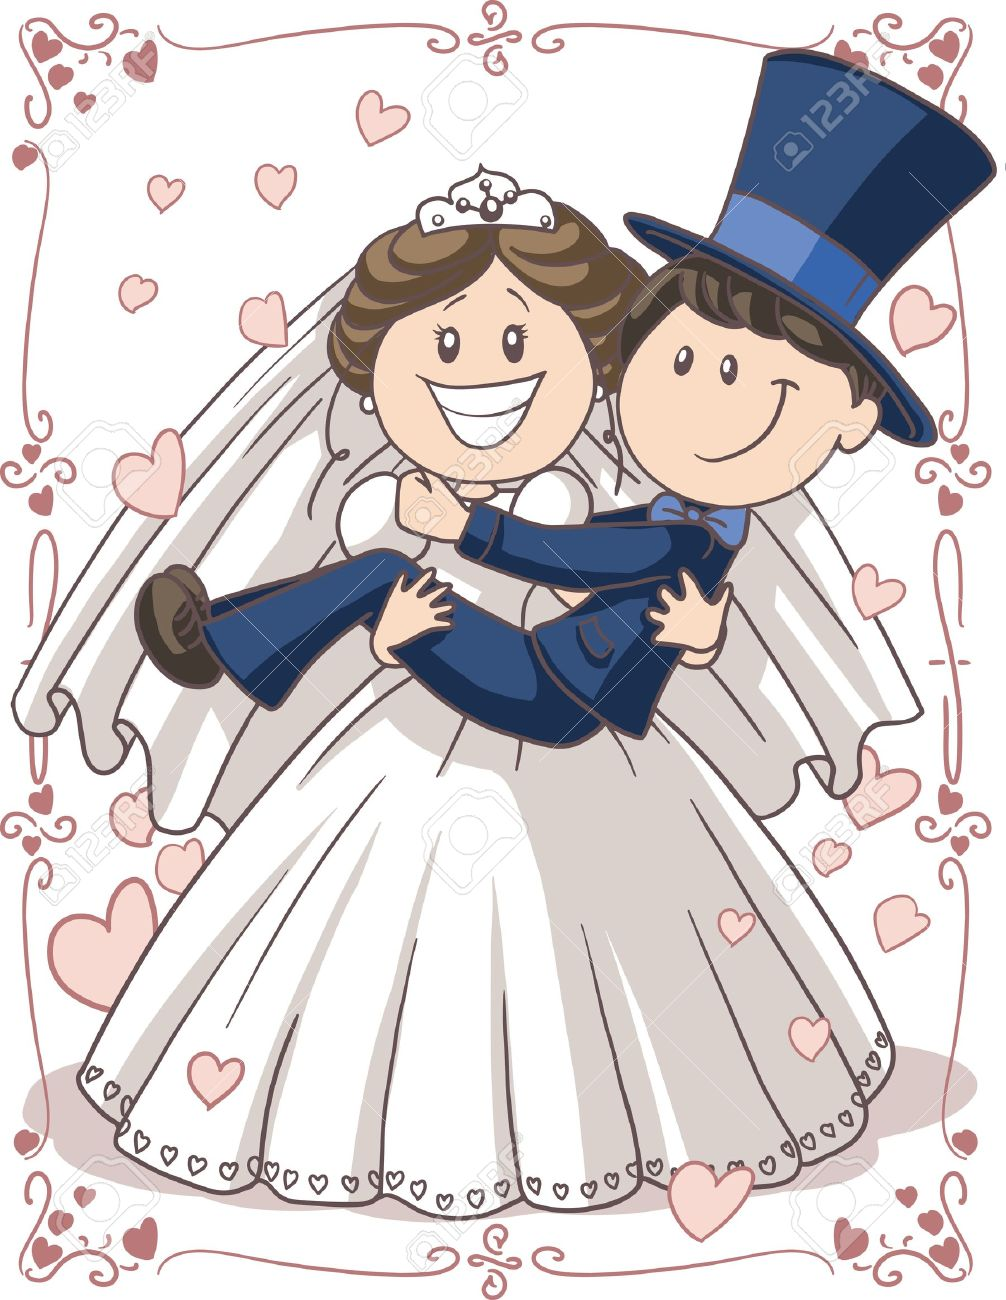 Cartoon Bride And Groom Wedding Invitations Cartoon of Bride And Groom